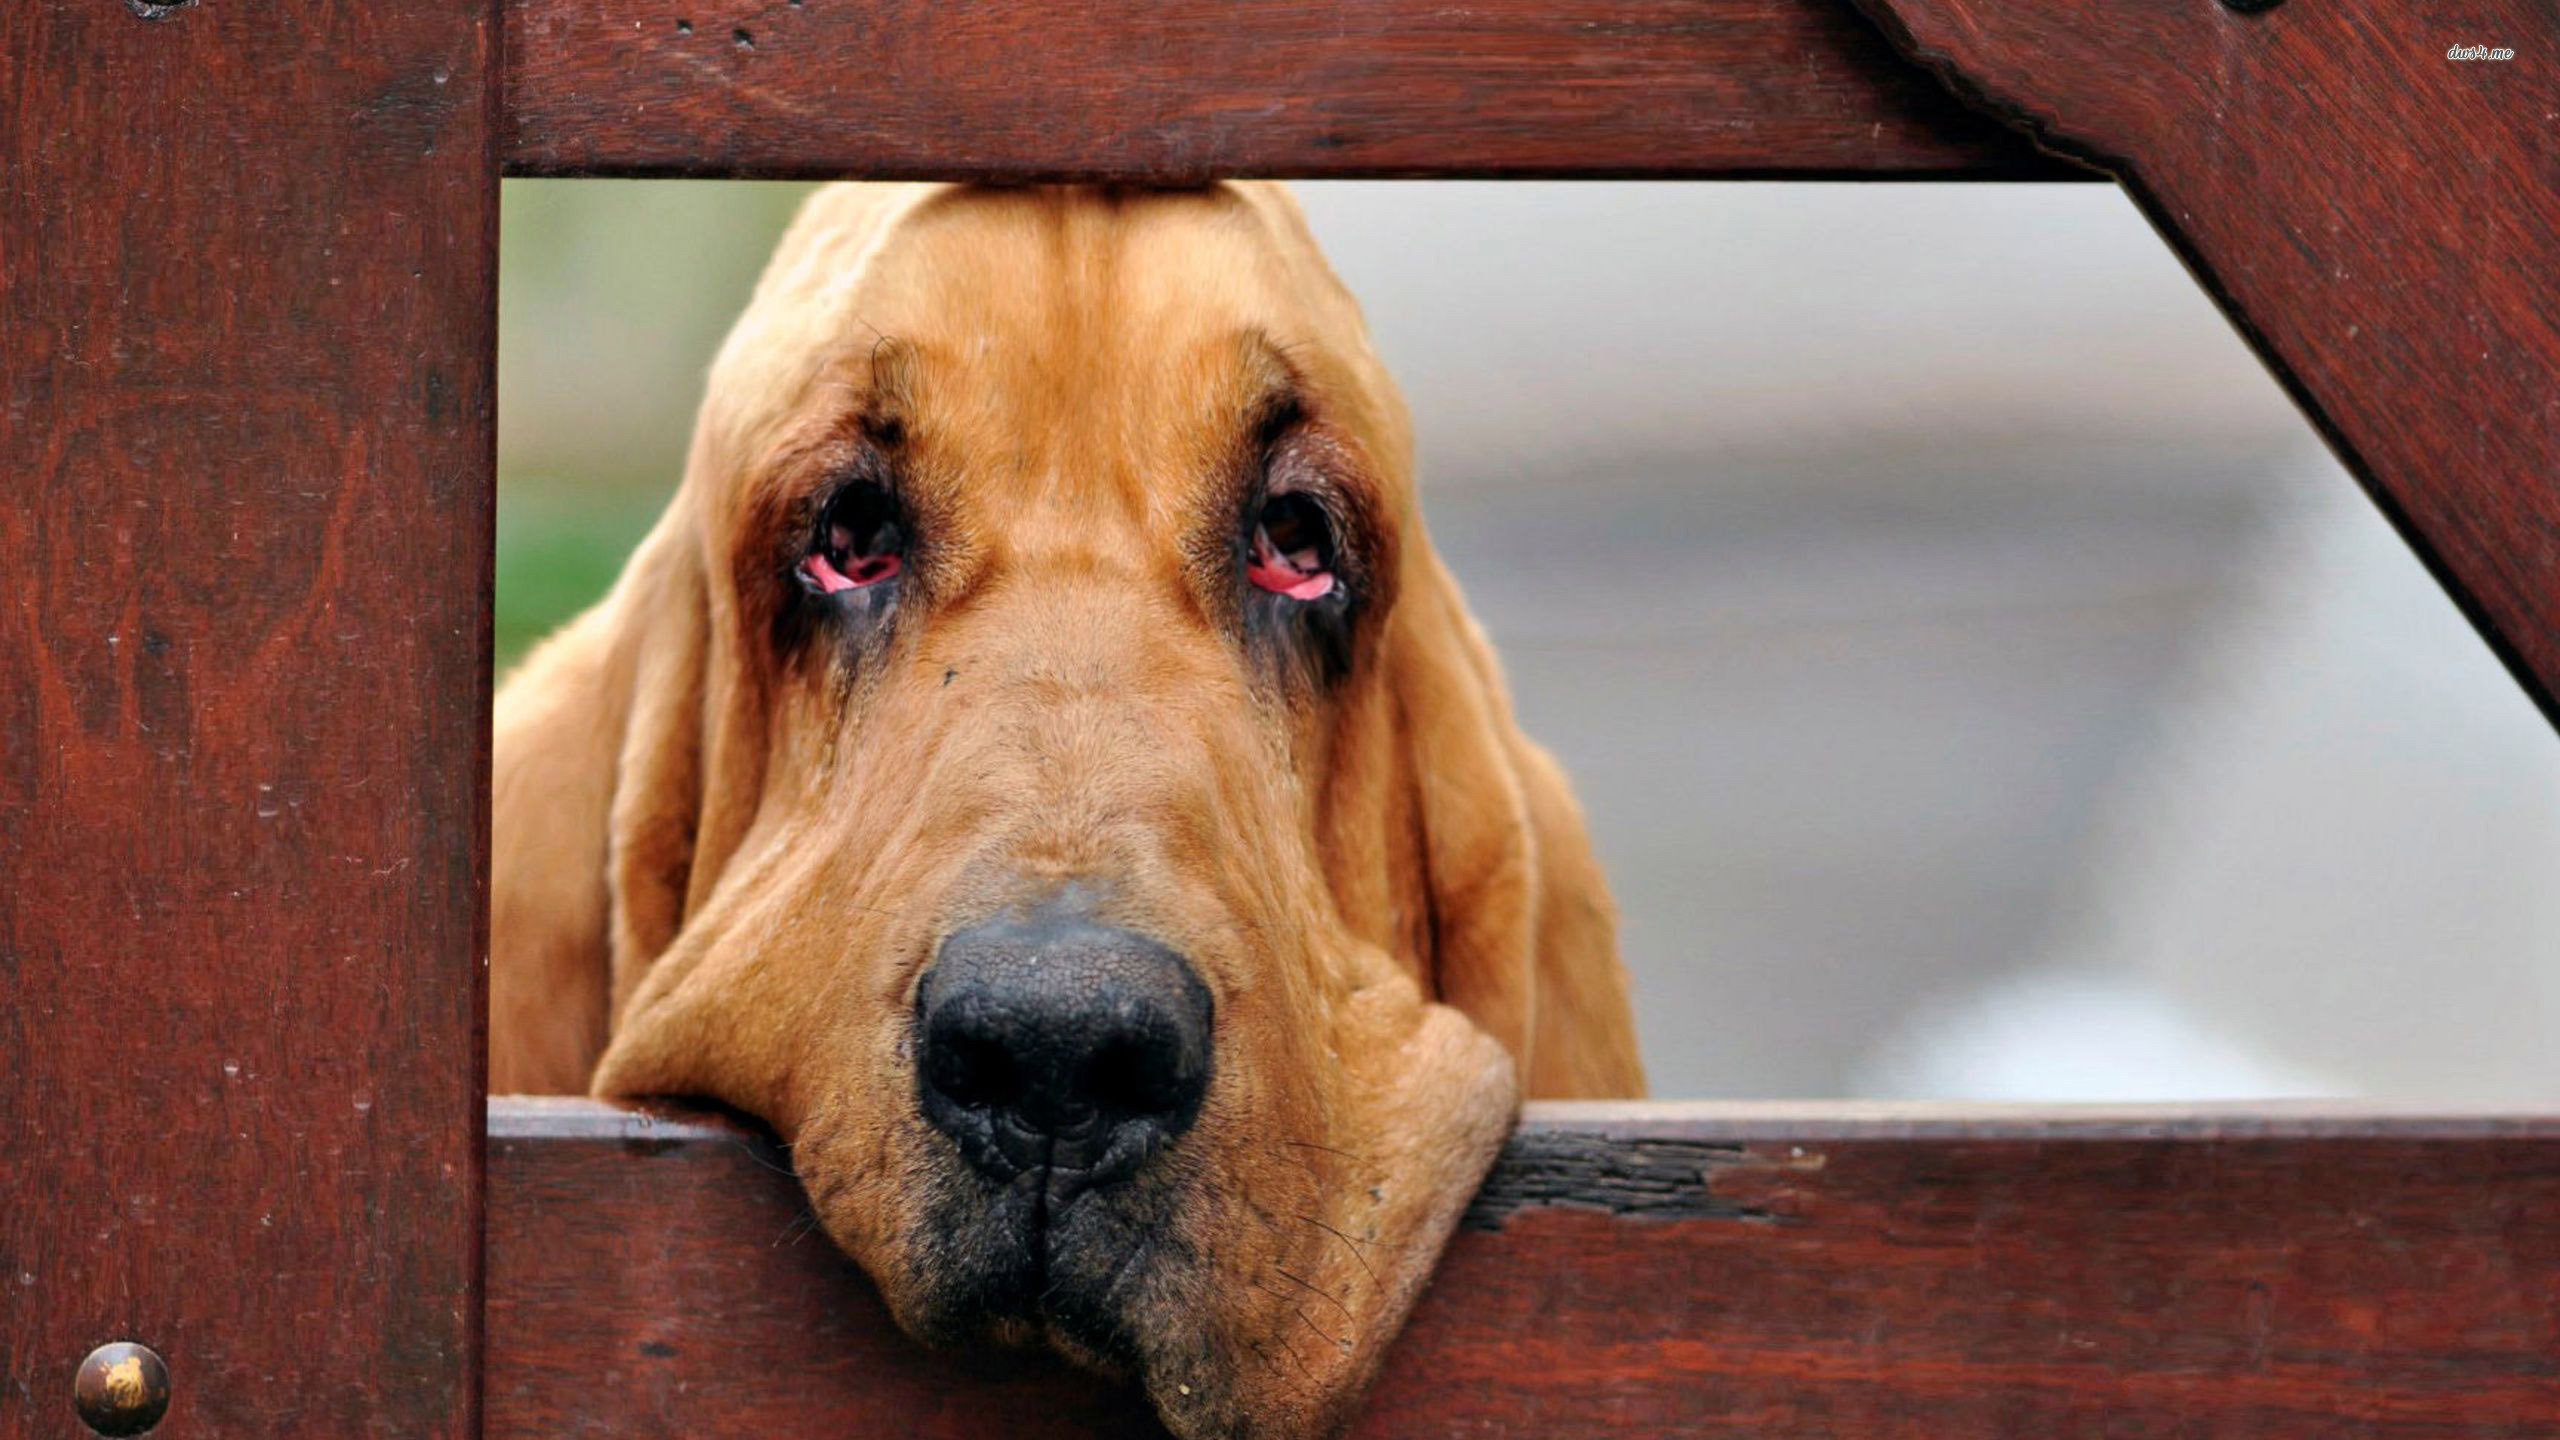 Download Bloodhound wallpaper Animal wallpapers 29786 [2560x1440 2560x1440